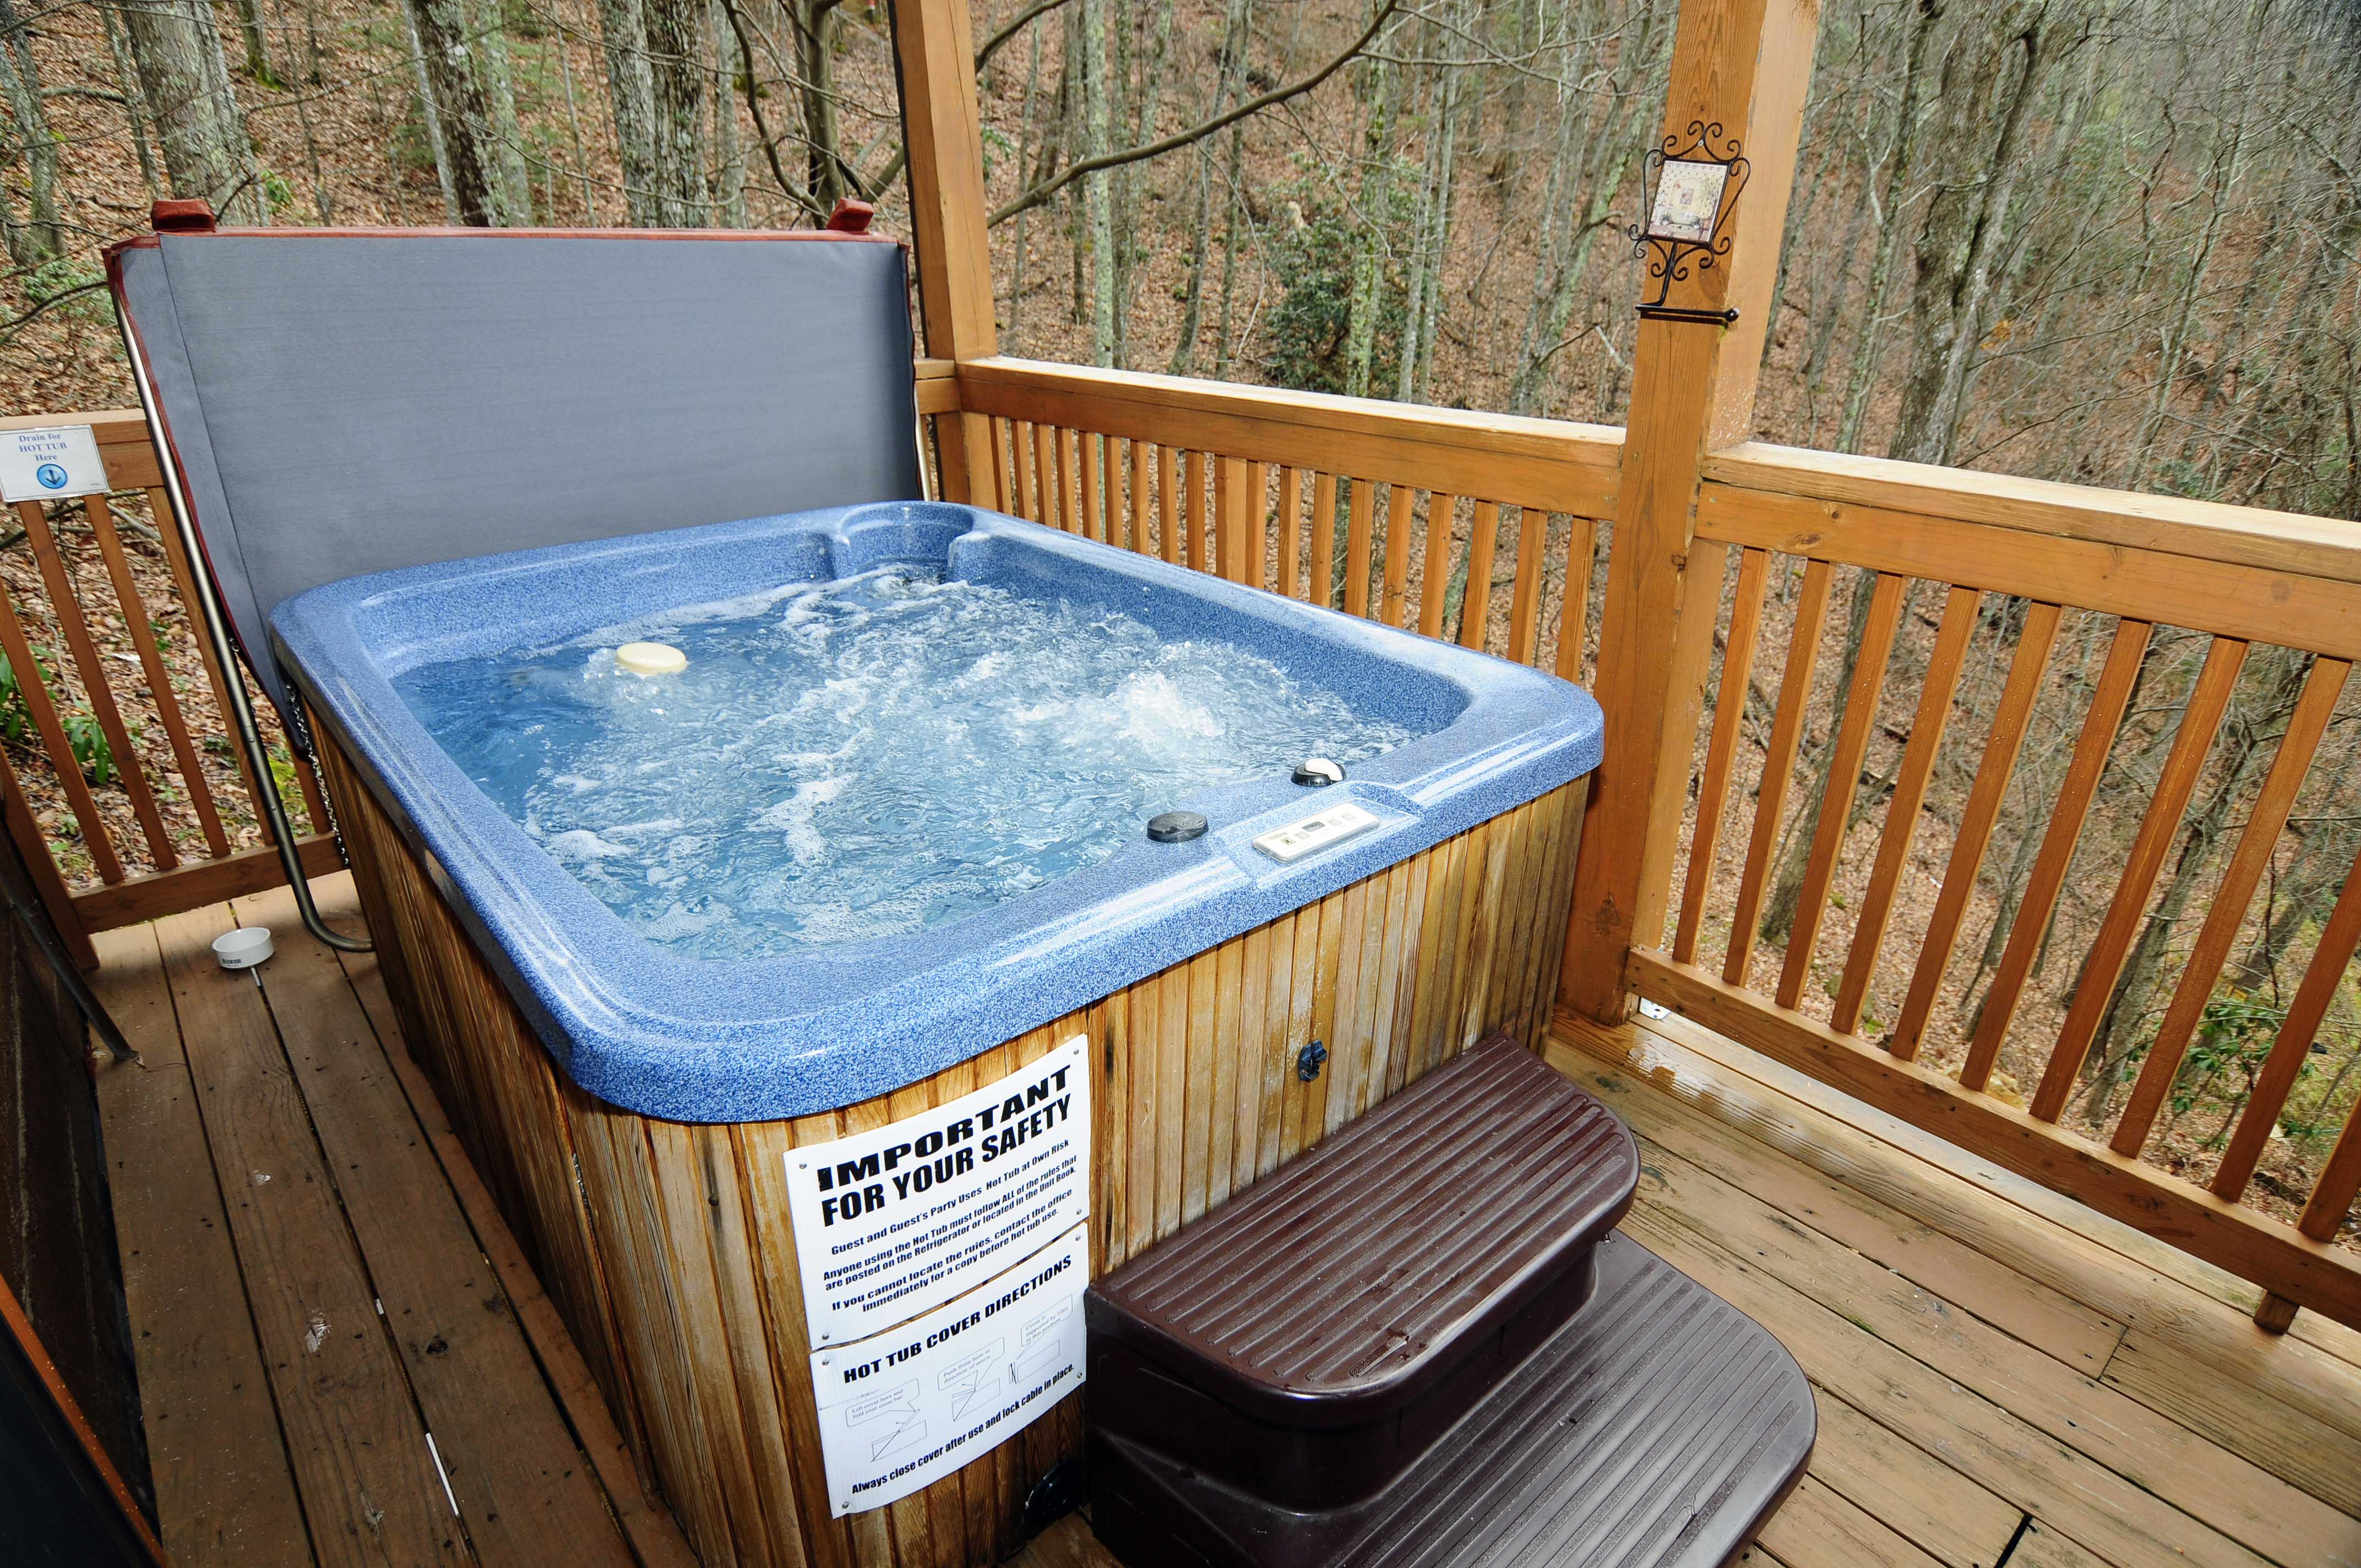 in pigeon hotels gatlinburg indoor forge motels luxury under discount tennessee tn cabins hot tub cheap affordable with pool